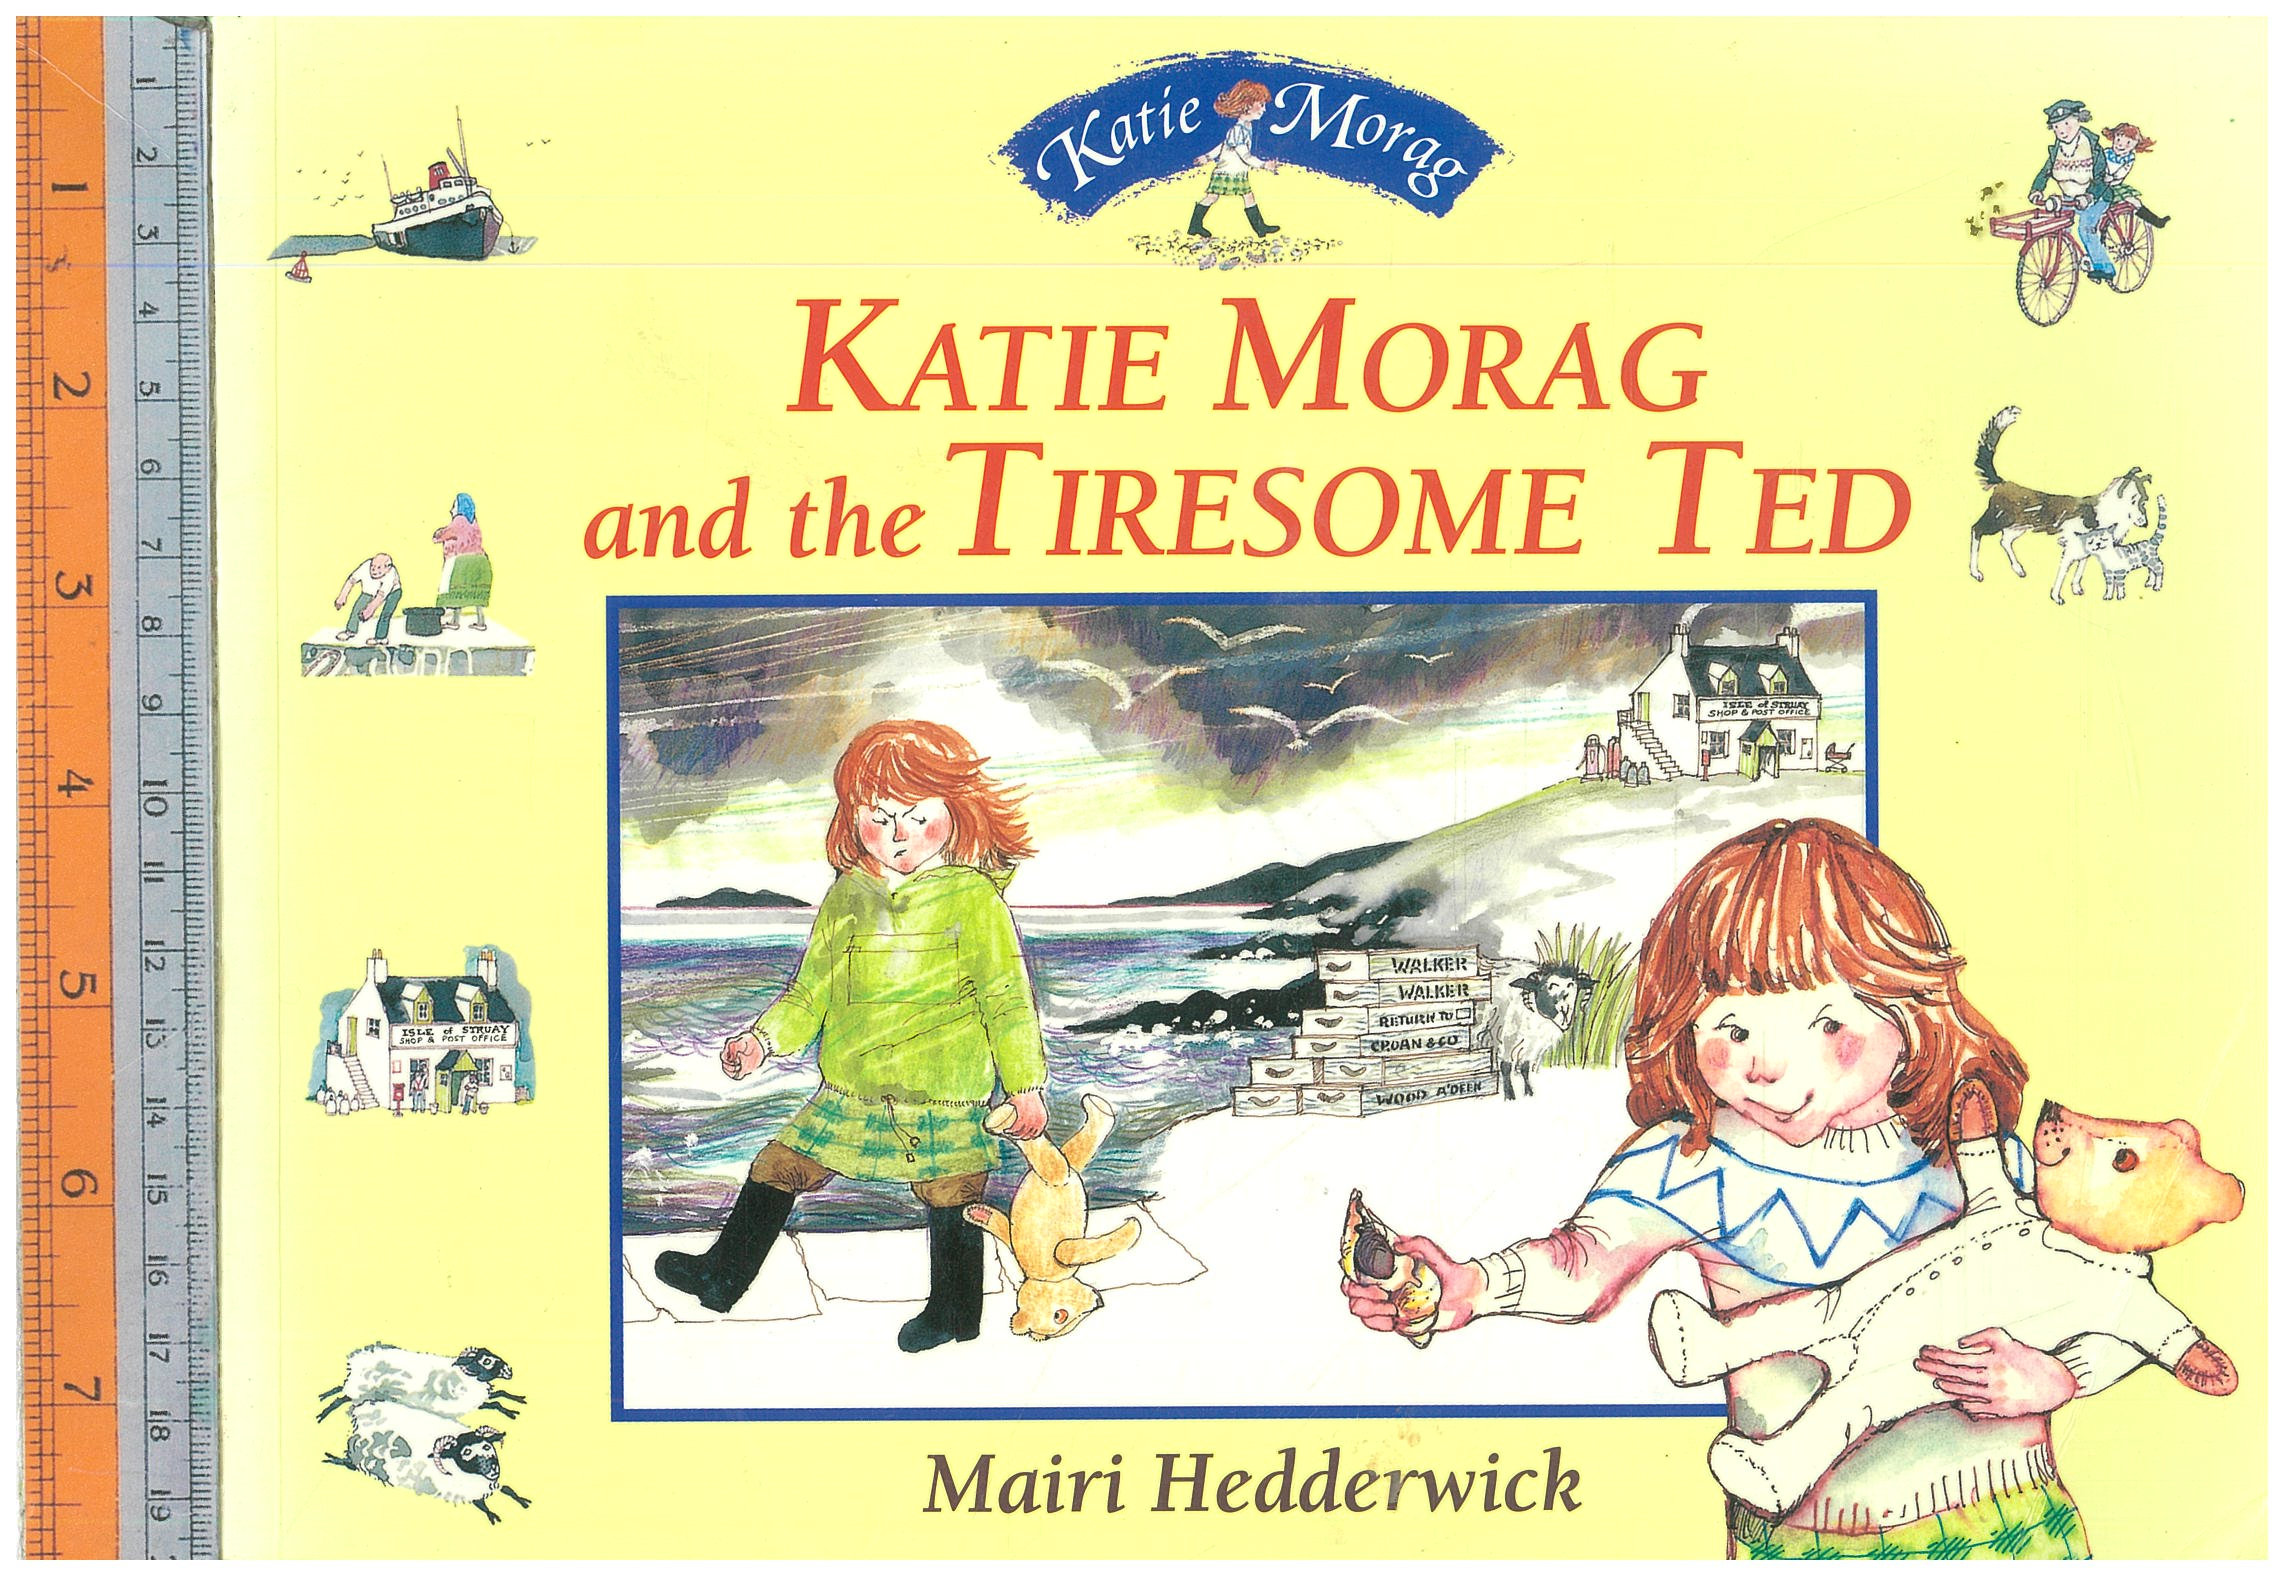 Katie morag and Tiresome